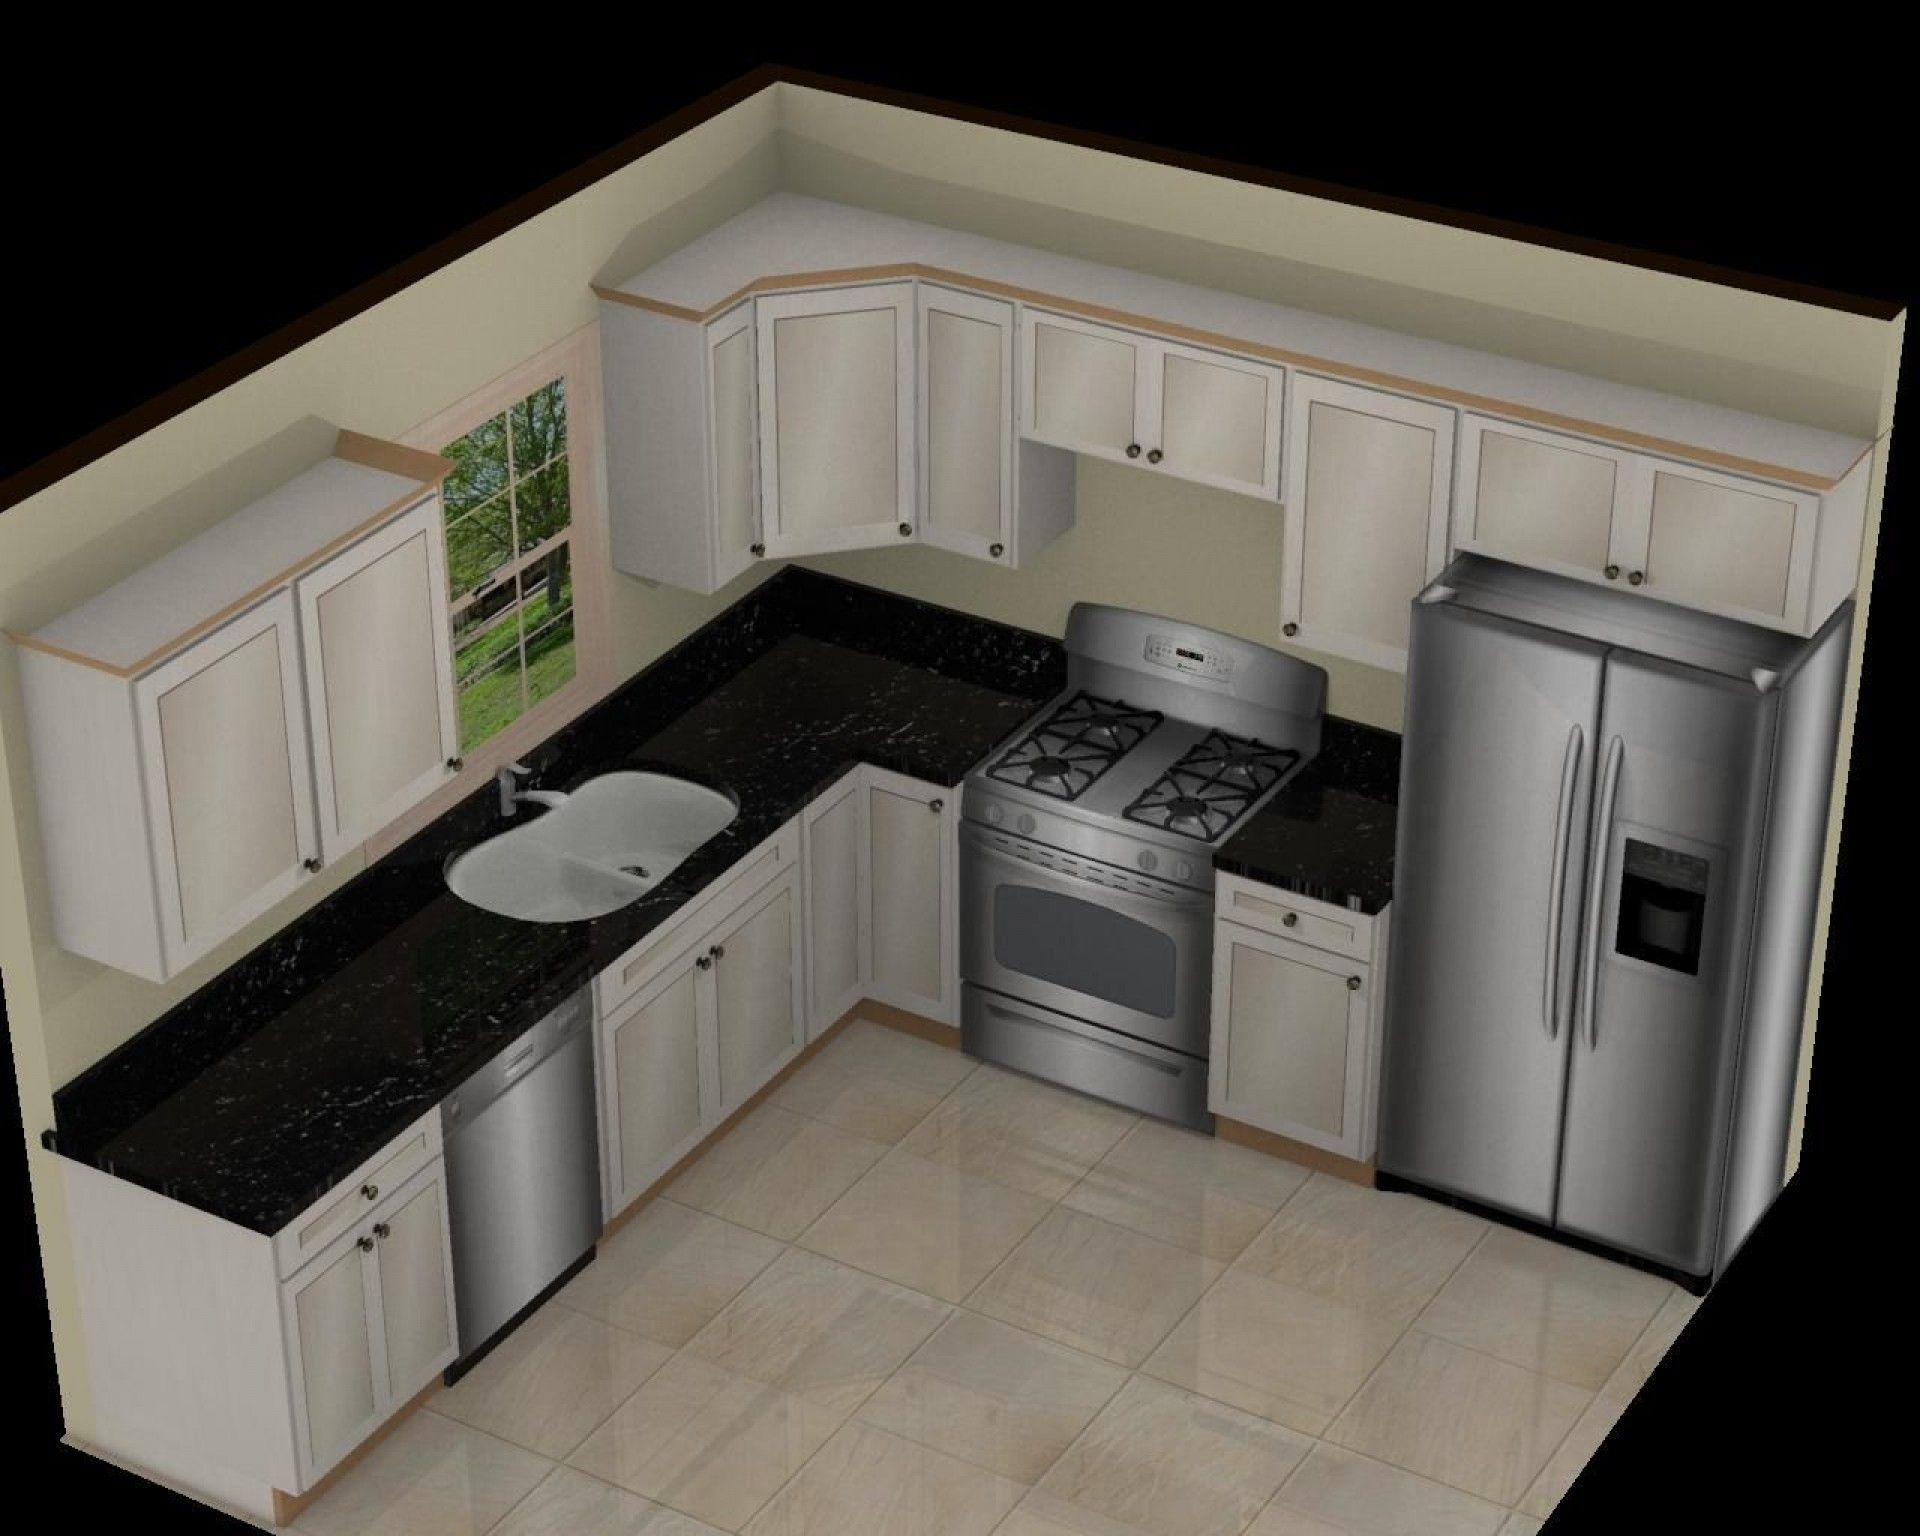 Image result for 3 x 3 kitchen design layouts  Kitchen layout